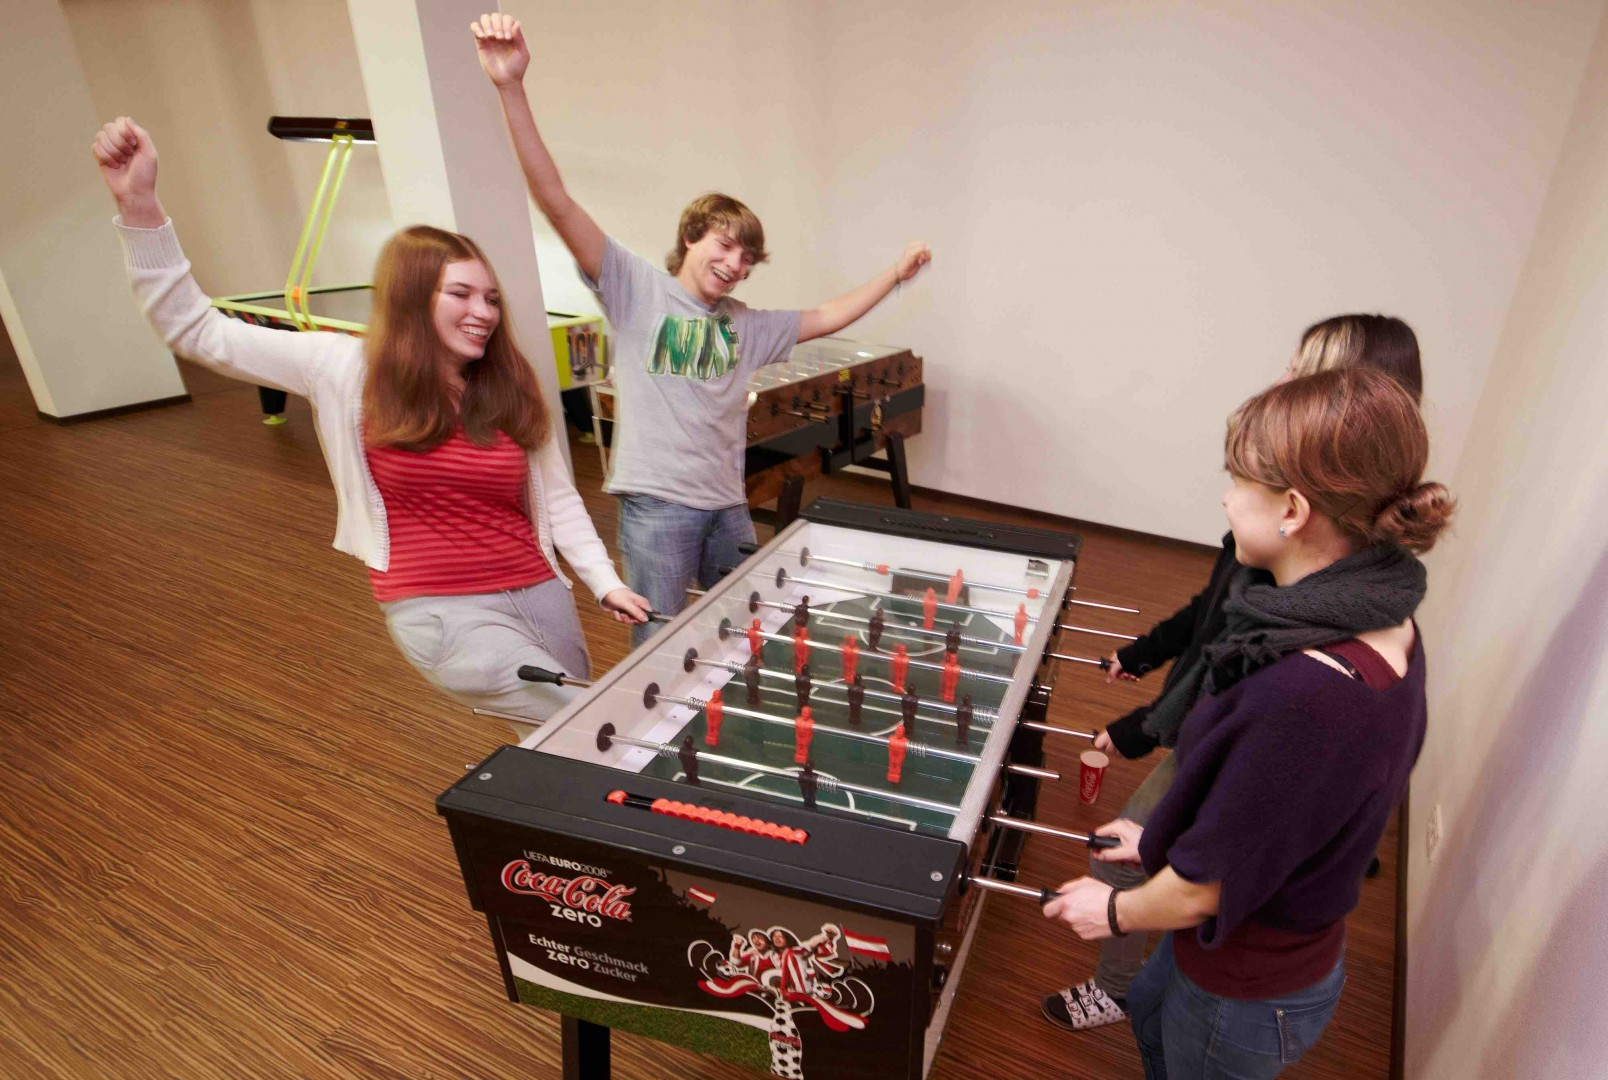 Tabletop Soccer at the Young Generation Resort Buchegg